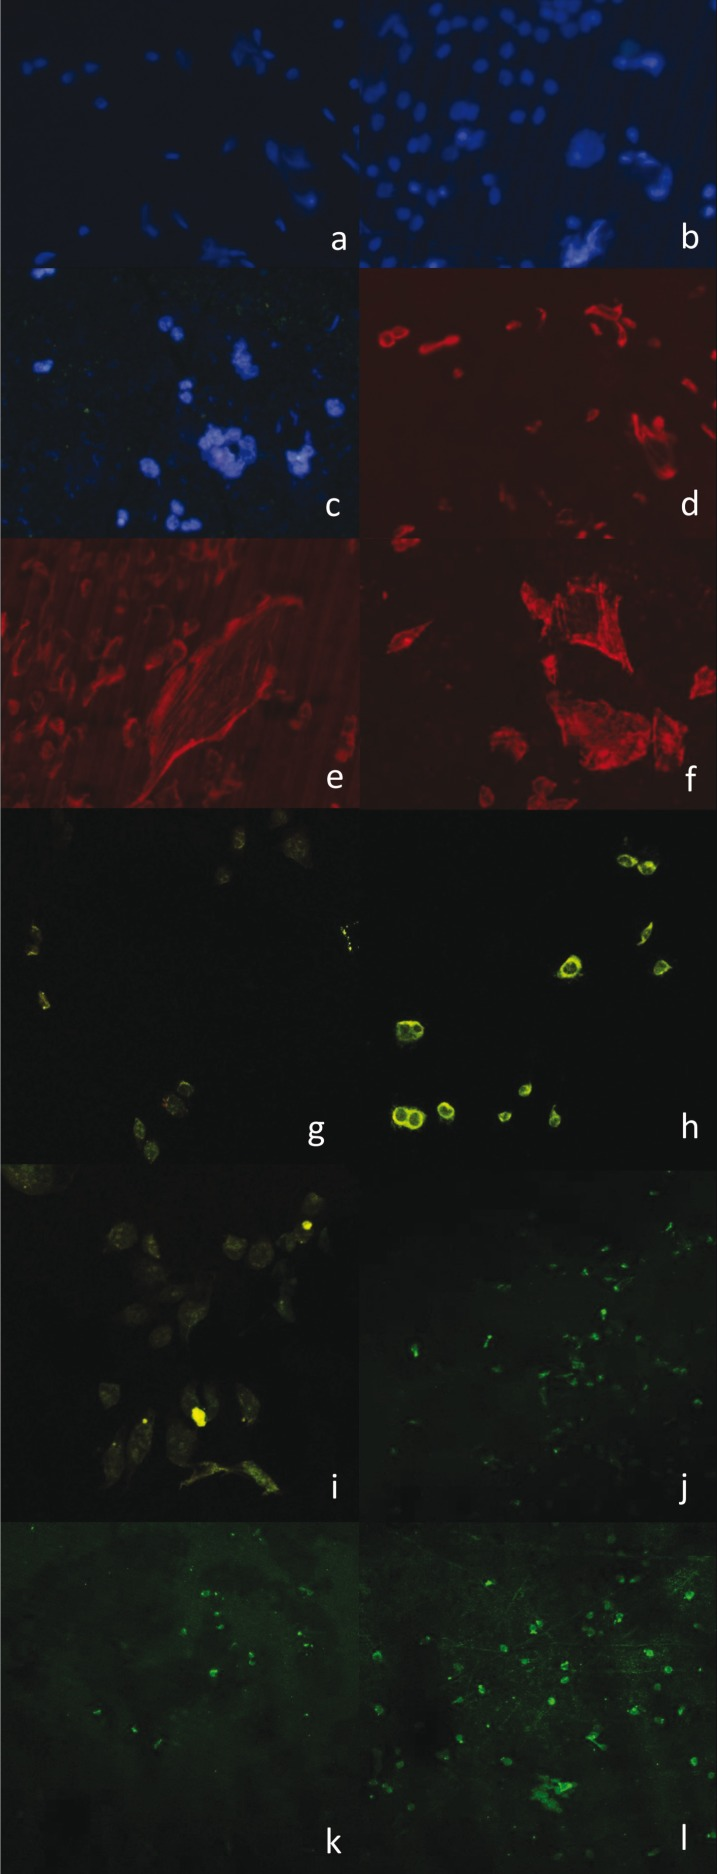 Fluorescence images: (a) Visualization of the nuclei of viable osteoblasts from the Control Group. Obtained with the Olympus <t>BX61®</t> fluorescence light microscope (Olympus Corporation, Shinjuku, Tokyo, Japan) and AxioScope® camera (Carl Zeiss®, OPM, Pico Dental, Germany) with a 20x objective. (b) Visualization of viable osteoblast nuclei of cultures on a machined surface. Images obtained with the Olympus BX61® fluorescence light microscope (Olympus Corporation, Shinjuku, Tokyo, Japan) and AxioScope® camera (Carl Zeiss®, OPM, Pico Dental, Germany) with a 20x objective. (c) Visualization of viable osteoblast nuclei of cultures on an Osseotite® surface. Images obtained with the Olympus BX61® fluorescence light microscope (Olympus Corporation, Shinjuku, Tokyo, Japan) and AxioScope® camera (Carl Zeiss®, OPM, Pico Dental, Germany) with a 20x objective. (d) Visualization of osteoblast cytoskeleton using rhodamine stain of cultured osteoblasts belonging to the Control Group. Images obtained with the Olympus BX61® fluorescence light microscope (Olympus Corporation, Shinjuku, Tokyo, Japan) and AxioScope® camera (Carl Zeiss®, OPM, Pico Dental, Germany) with a 20x objective. (e) Visualization of osteoblast cytoskeleton using rhodamine stain of osteoblasts cultured on a machined surface. Images obtained with the Olympus BX61® fluorescence light microscope (Olympus Corporation, Shinjuku, Tokyo, Japan) and AxioScope® camera (Carl Zeiss®, OPM, Pico Dental, Germany) with a 20x objective. (f) Visualization of osteoblast cytoskeleton using rhodamine stain of osteoblasts cultured on an Osseotite® surface. Images obtained with the Olympus BX61® fluorescence light microscope (Olympus Corporation, Shinjuku, Tokyo, Japan) and AxioScope® camera (Carl Zeiss®, OPM, Pico Dental, Germany) with a 20x objective. (g) Visualization of the Control Group cultured NHOst mitochondria with JC-1 visualized using the LEICA TCS-SP2 laser scanning confocal microscope (Leica Microsystems, Wetzlar, Germa